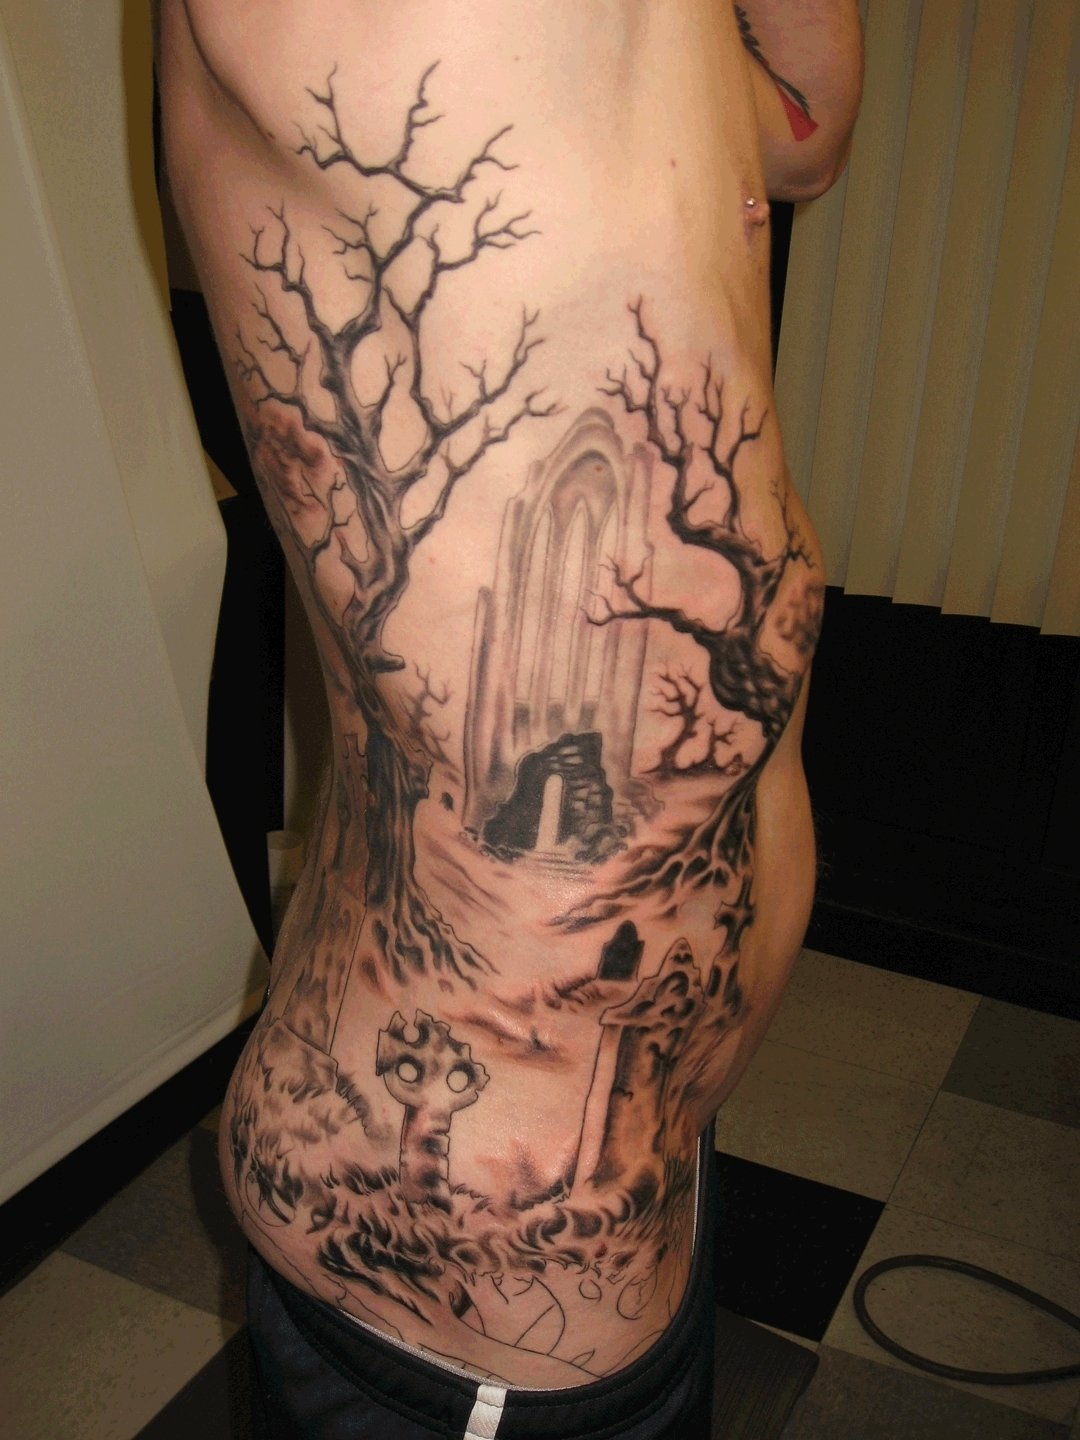 10 Great Cool Tattoo Ideas For Women tattoos and art cool tattoo designs and picture 2020